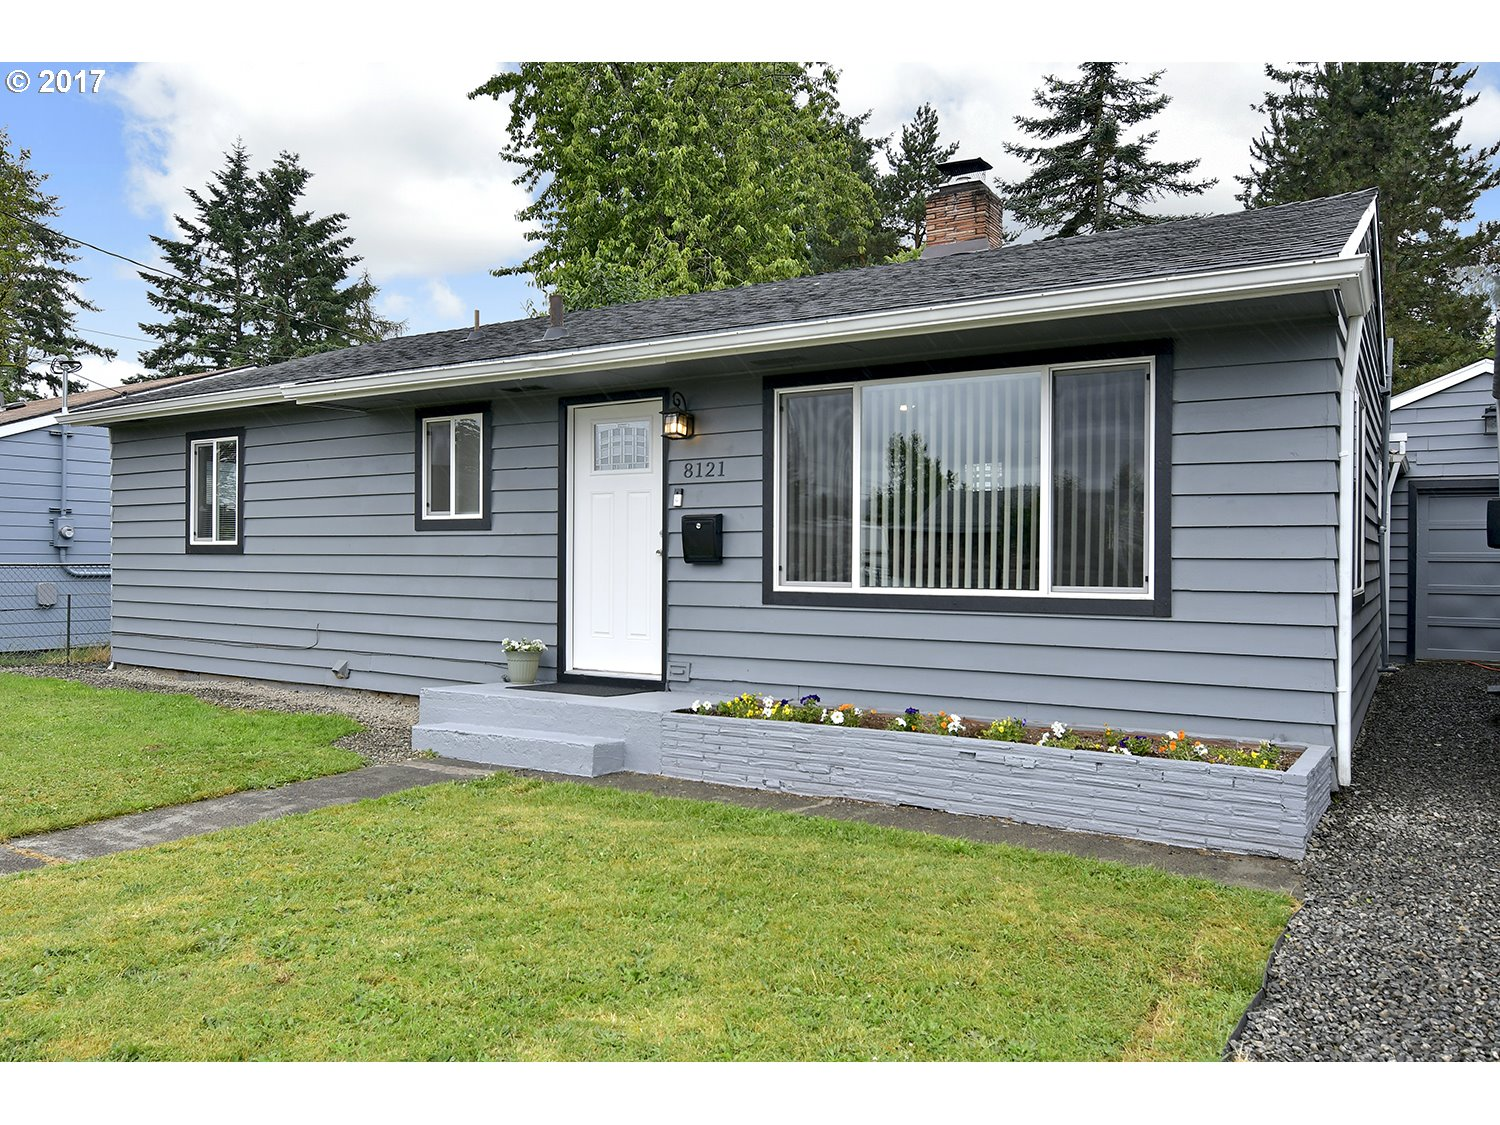 8121 SE 63RD AVE Portland, OR 97206 - MLS #: 17549522